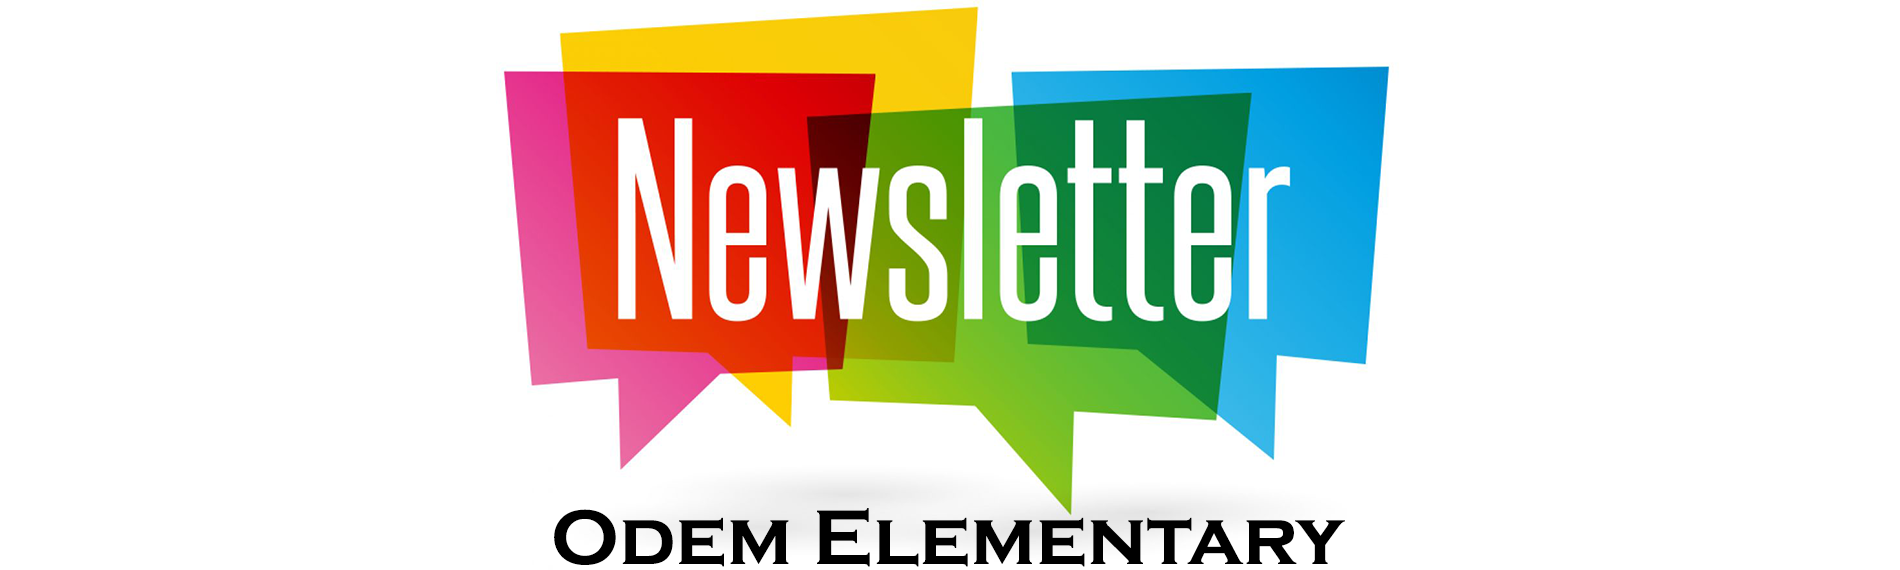 Newsletter redirection for OES